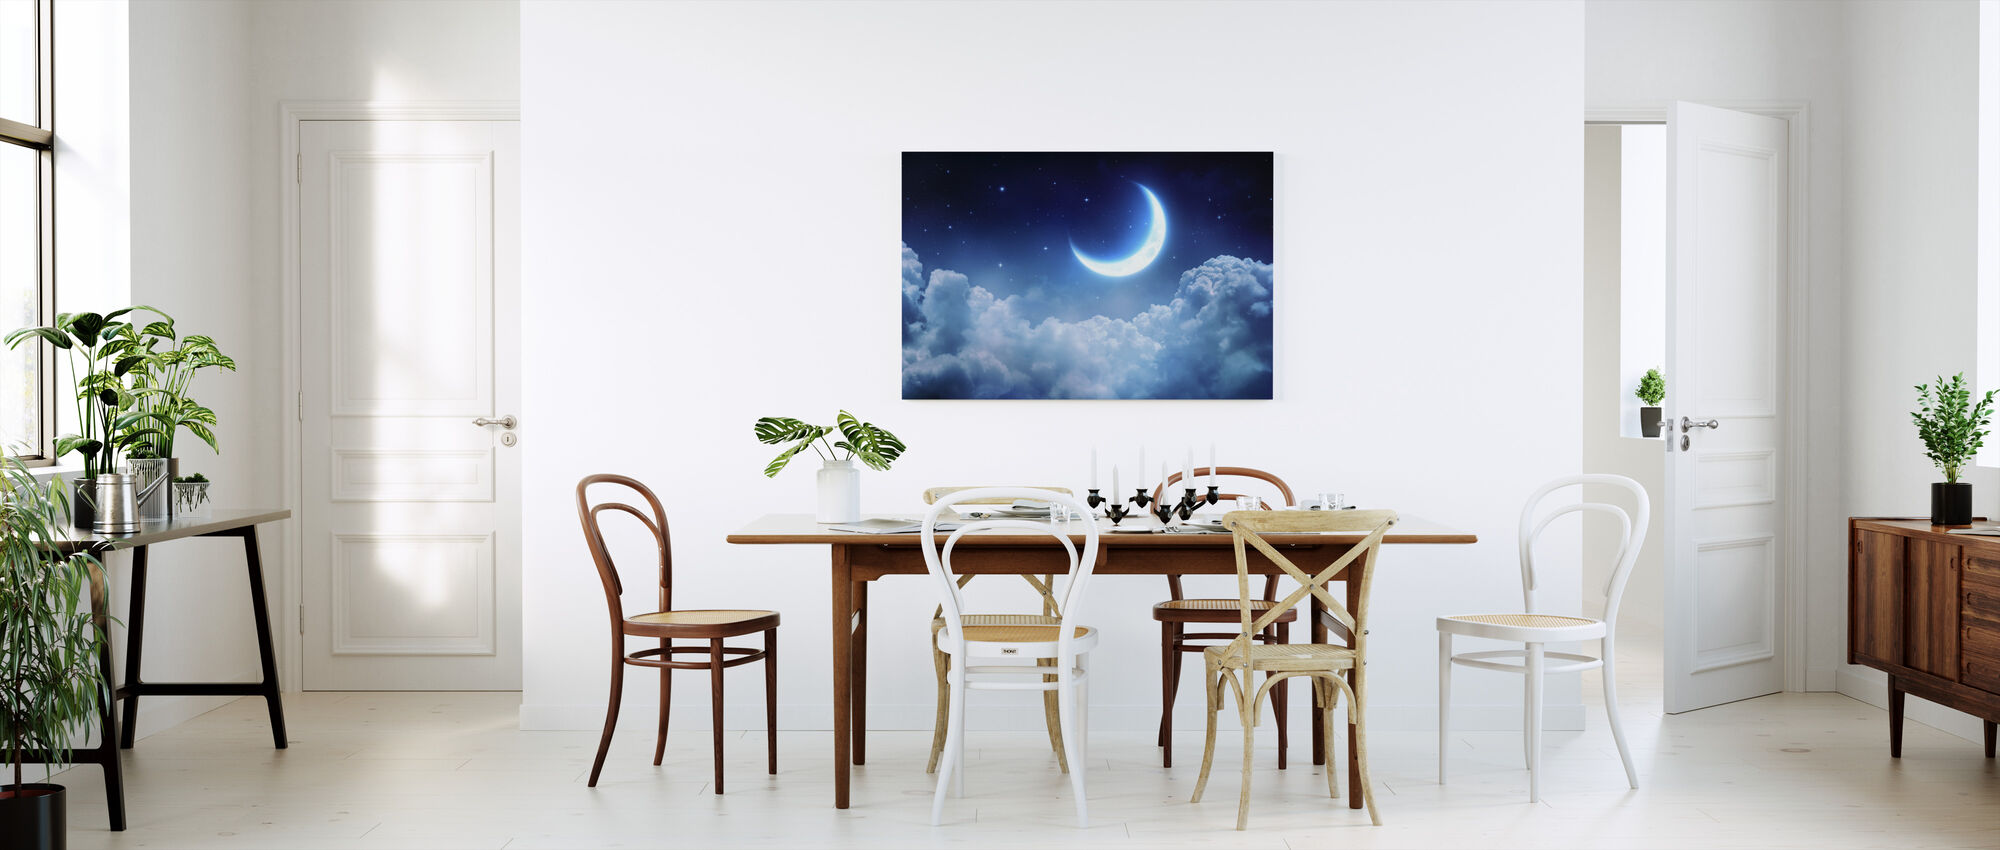 Dream View Maan - Canvas print - Keuken